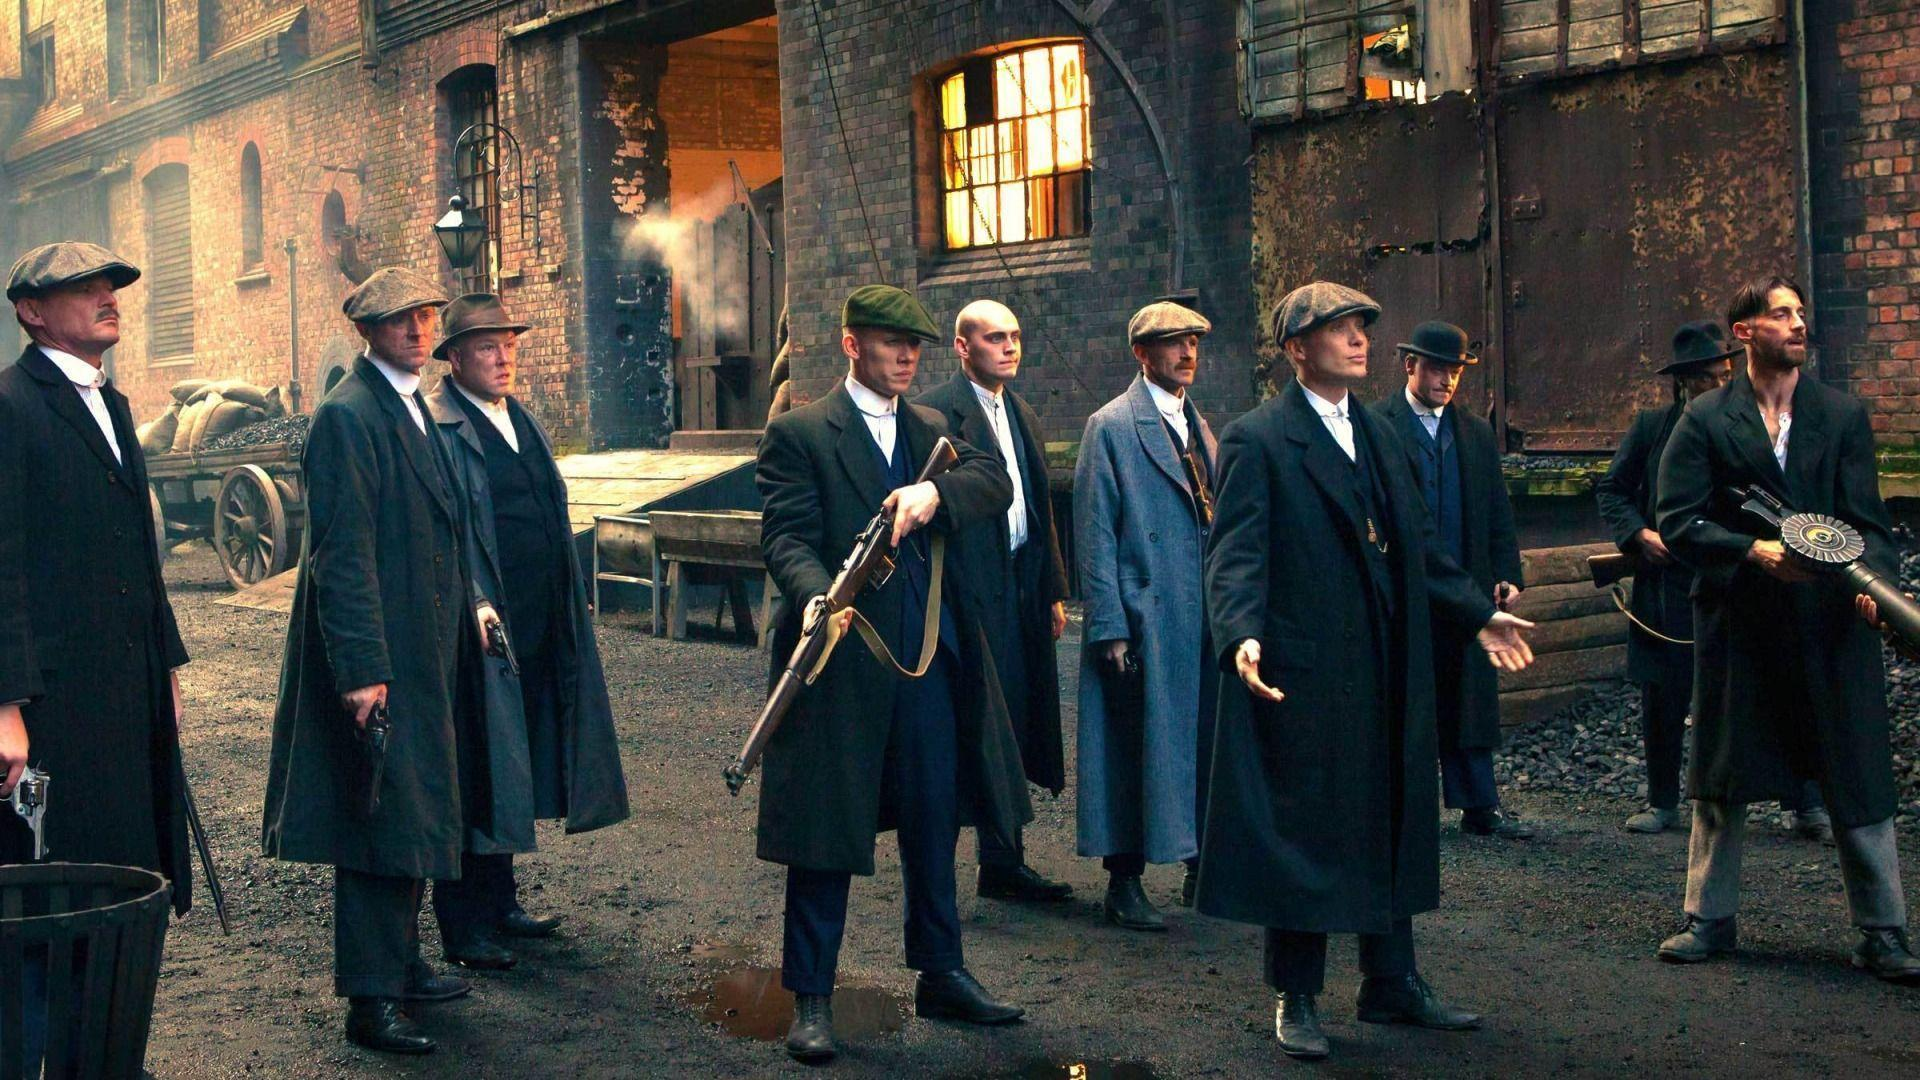 Download Wallpapers weapons, the series, gang, BBC, Peaky blinders